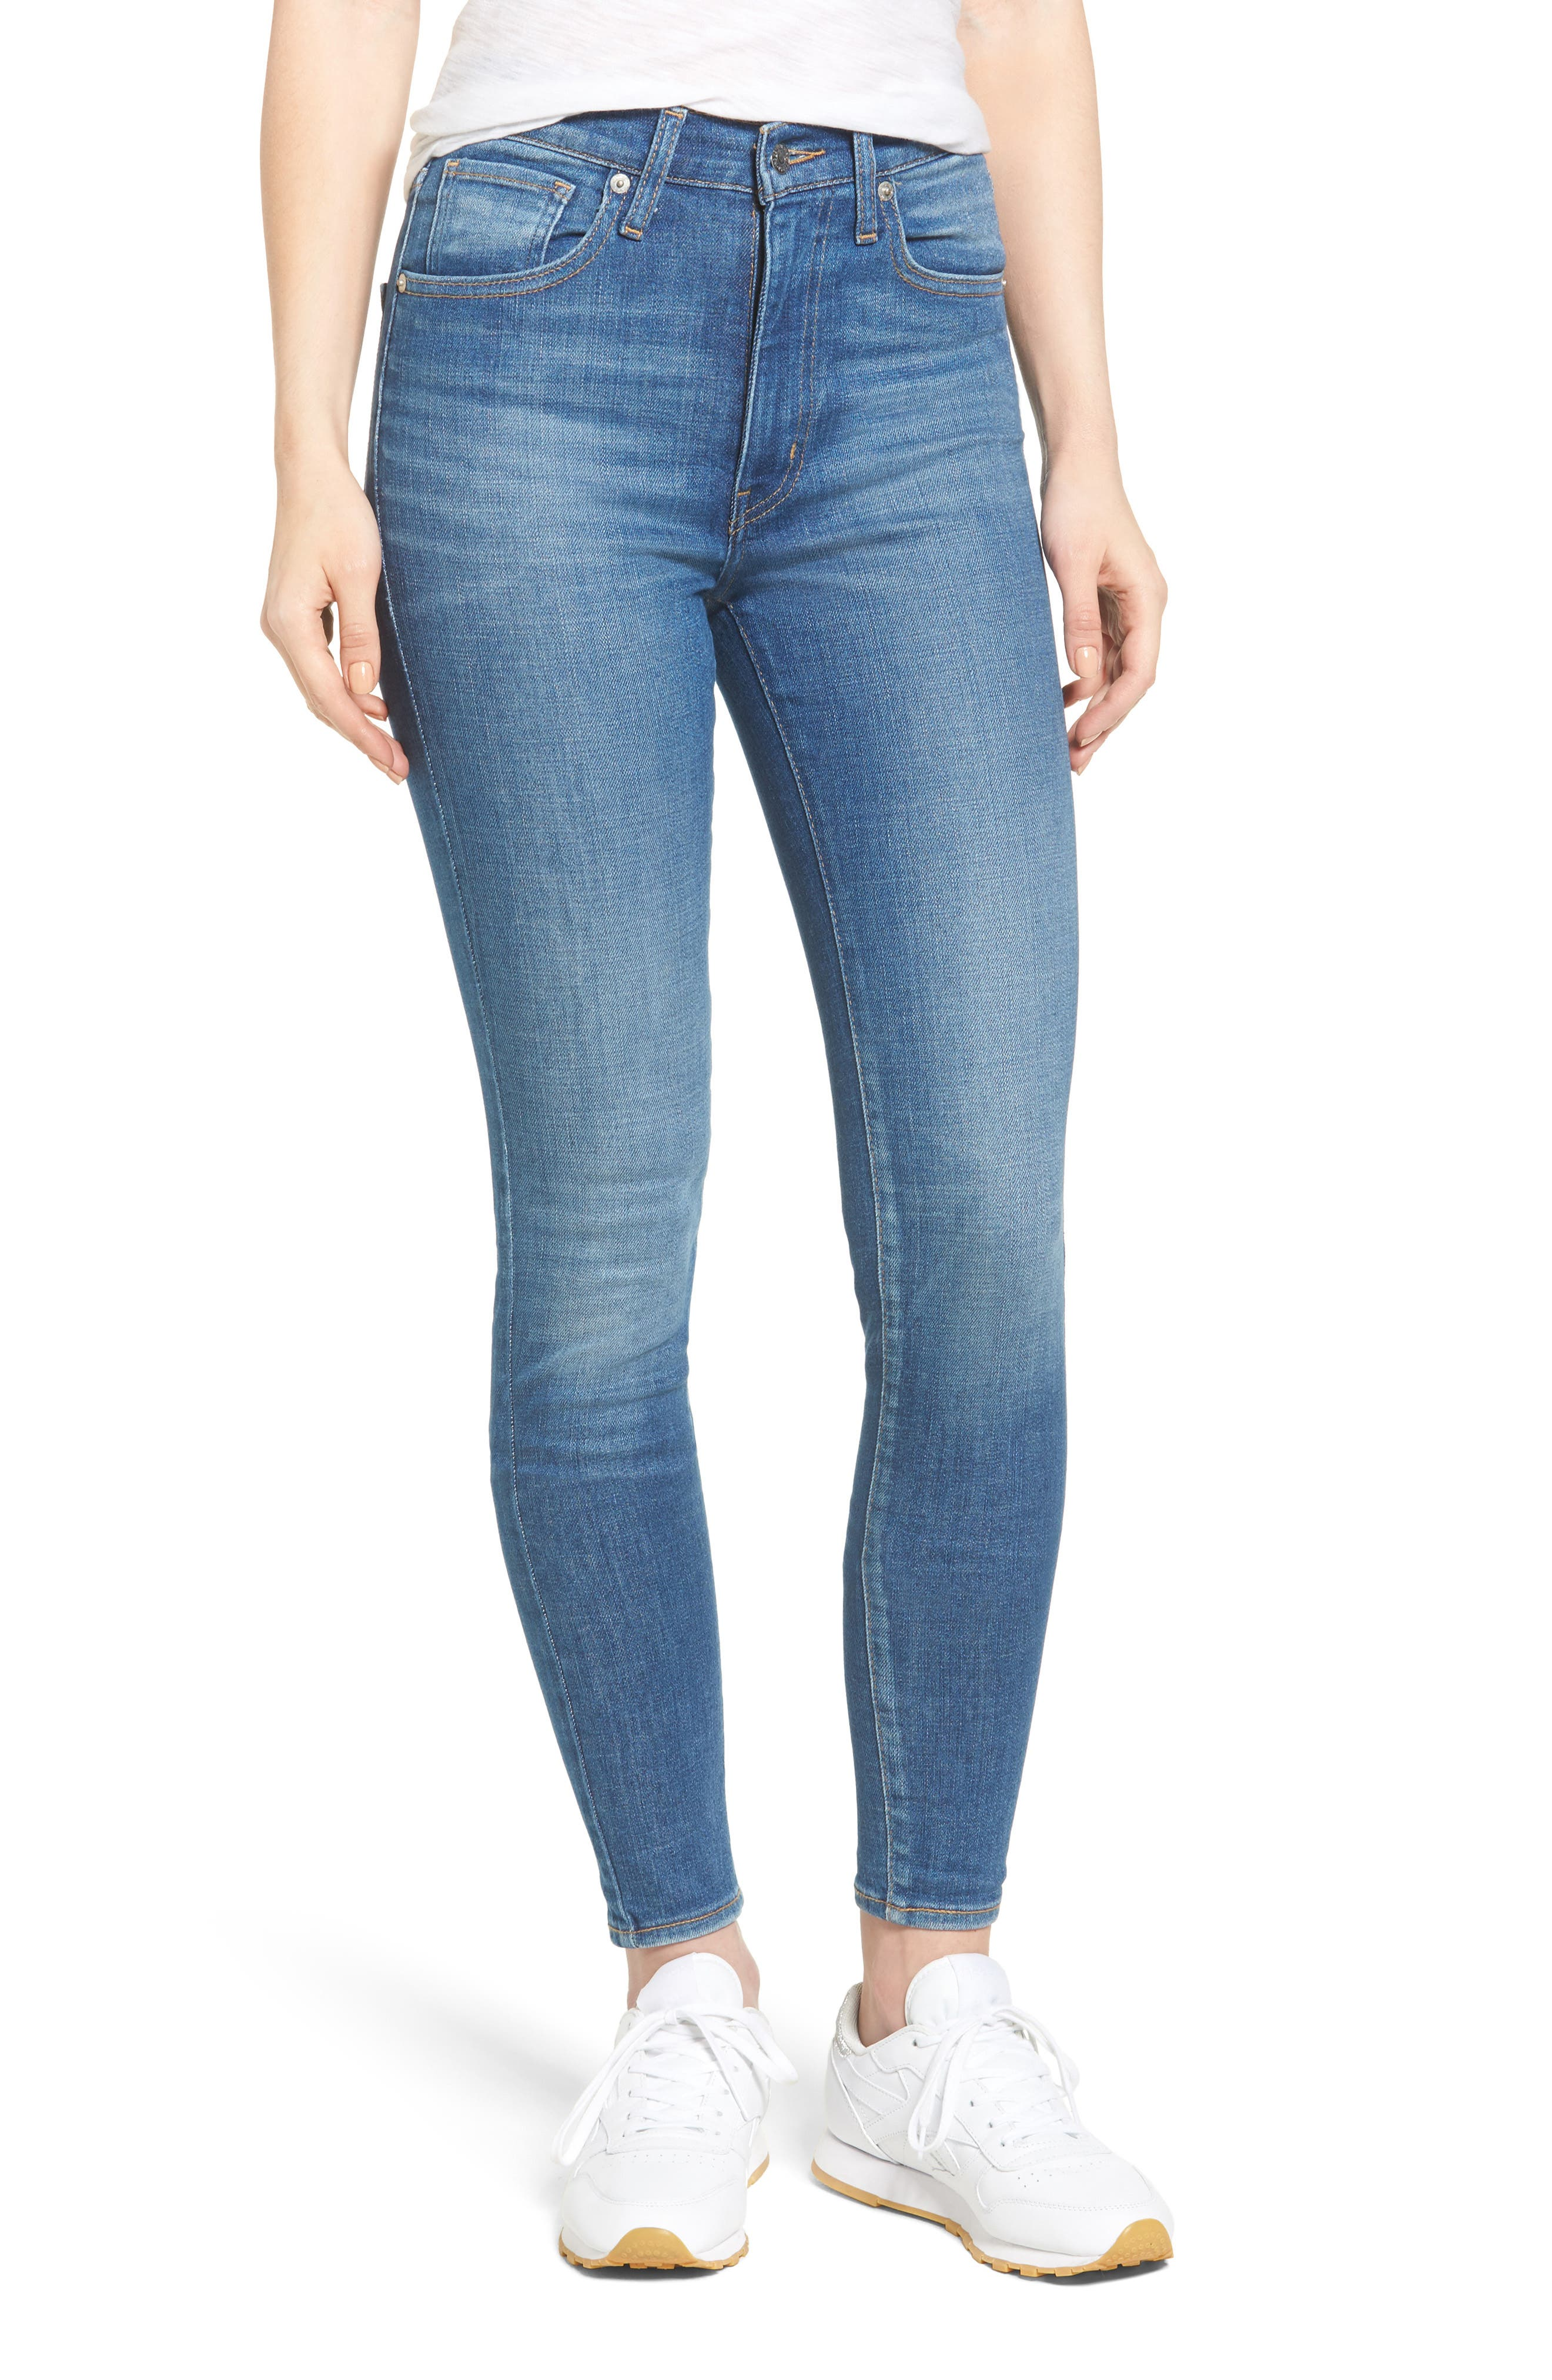 Mile High Skinny Jeans,                             Main thumbnail 1, color,